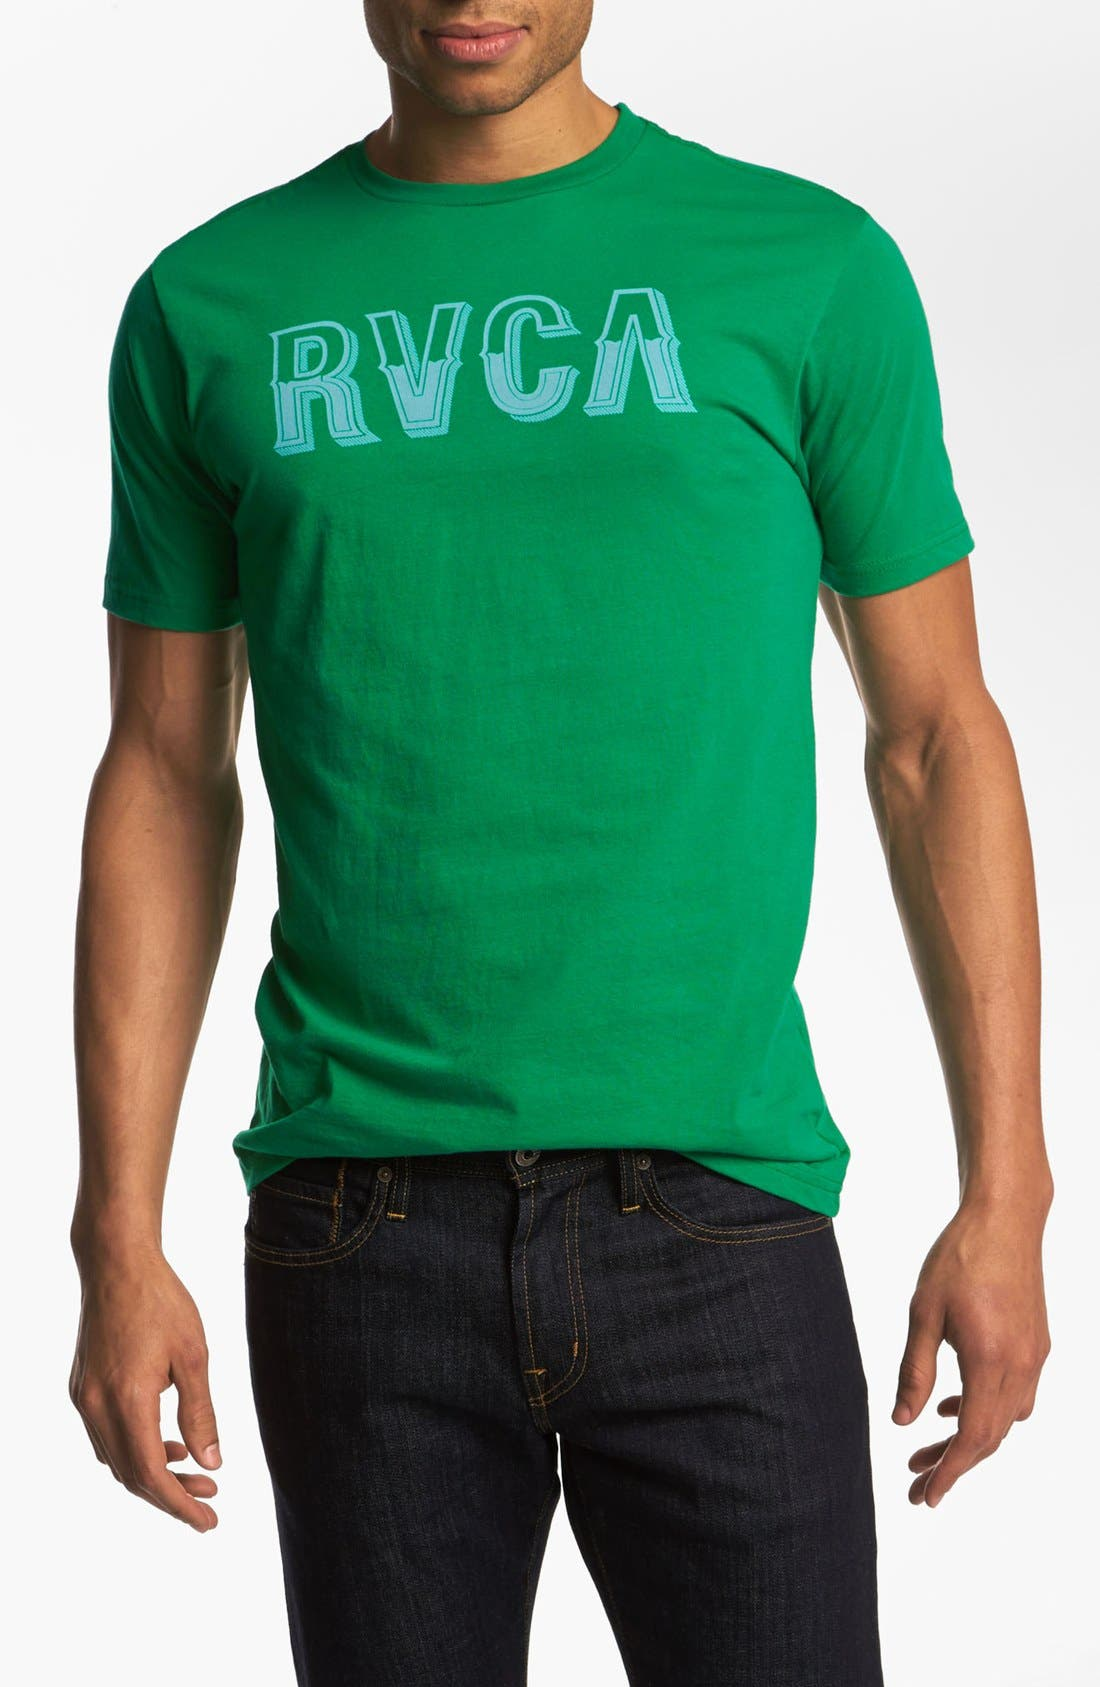 Alternate Image 1 Selected - RVCA 'Vintage' Graphic T-Shirt